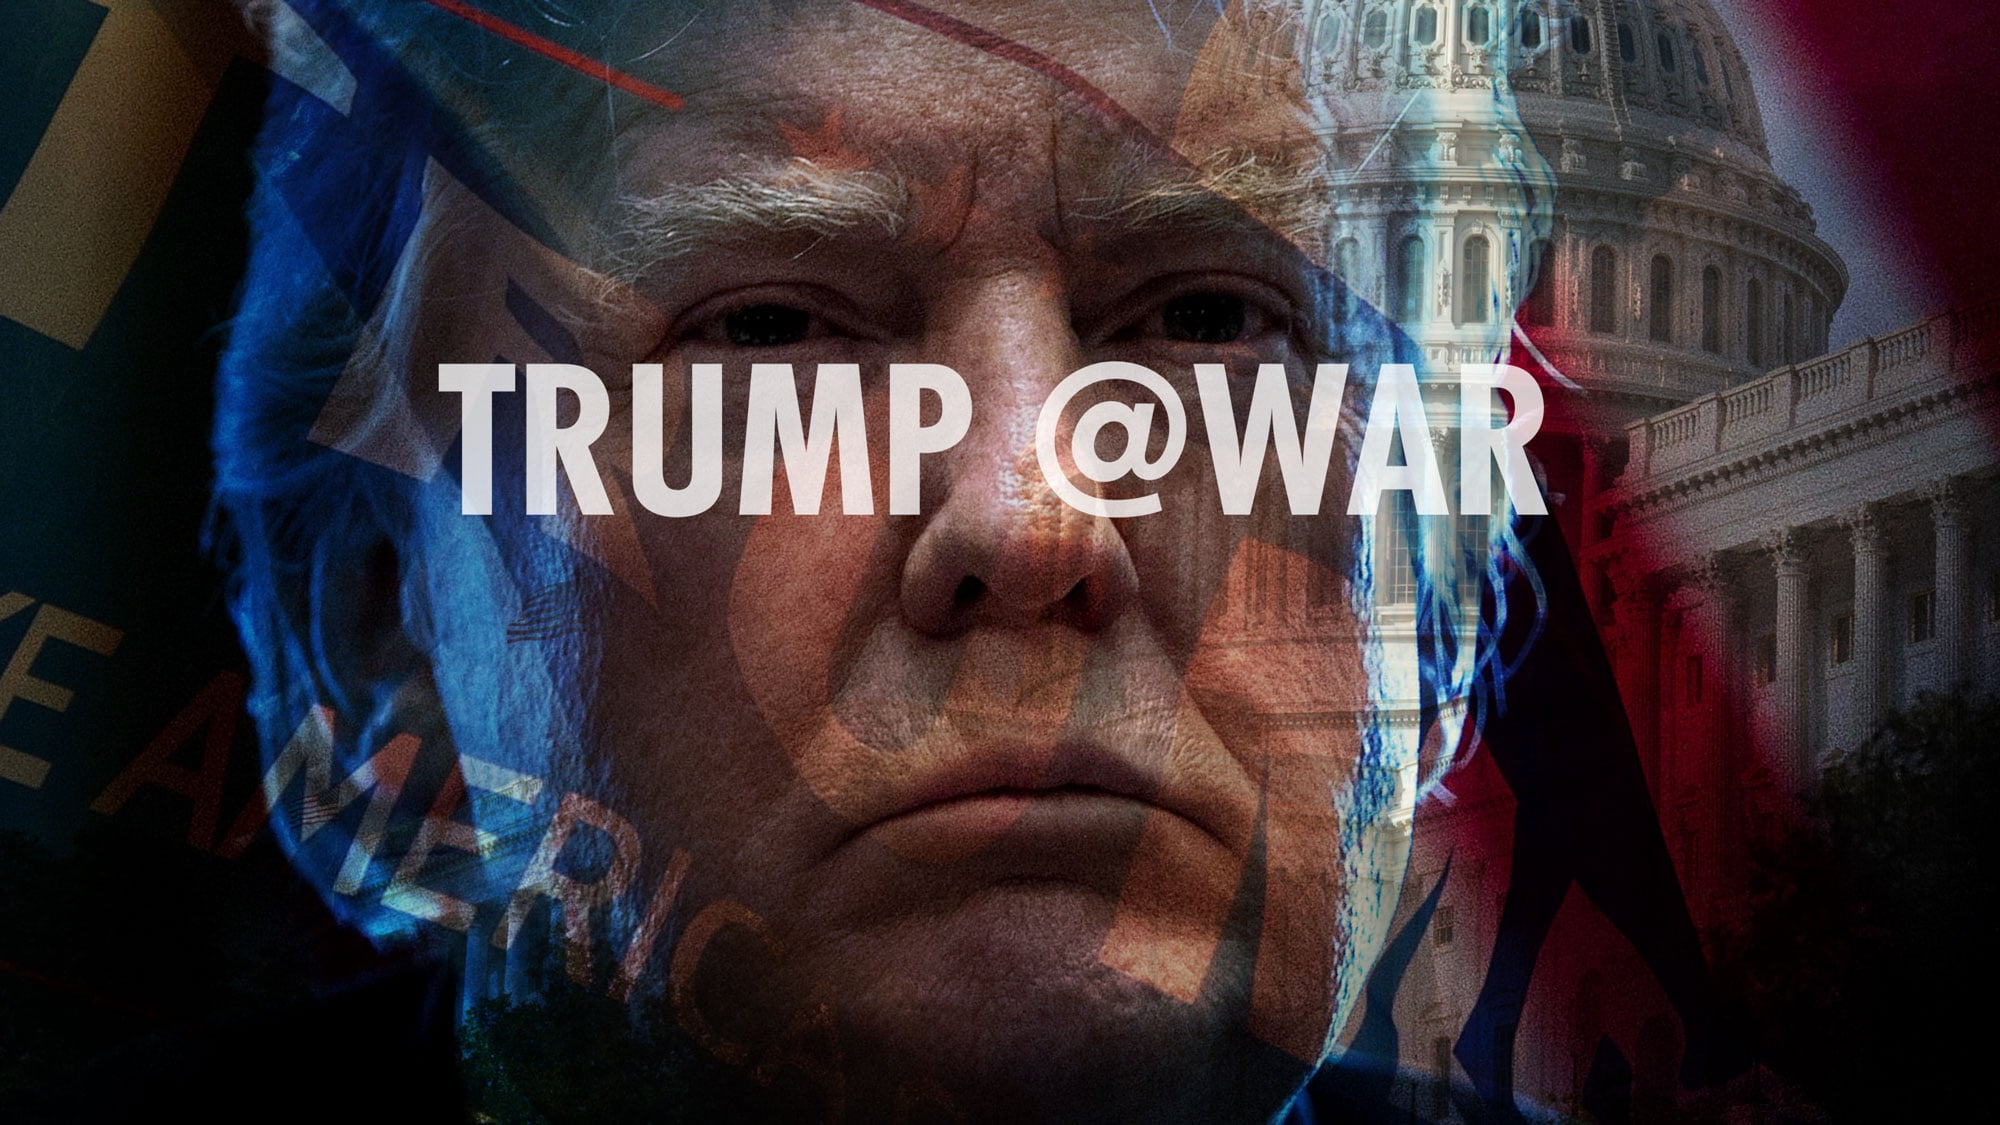 Trump @ War full movie, right here right now. Make sure you share this powerfull.....